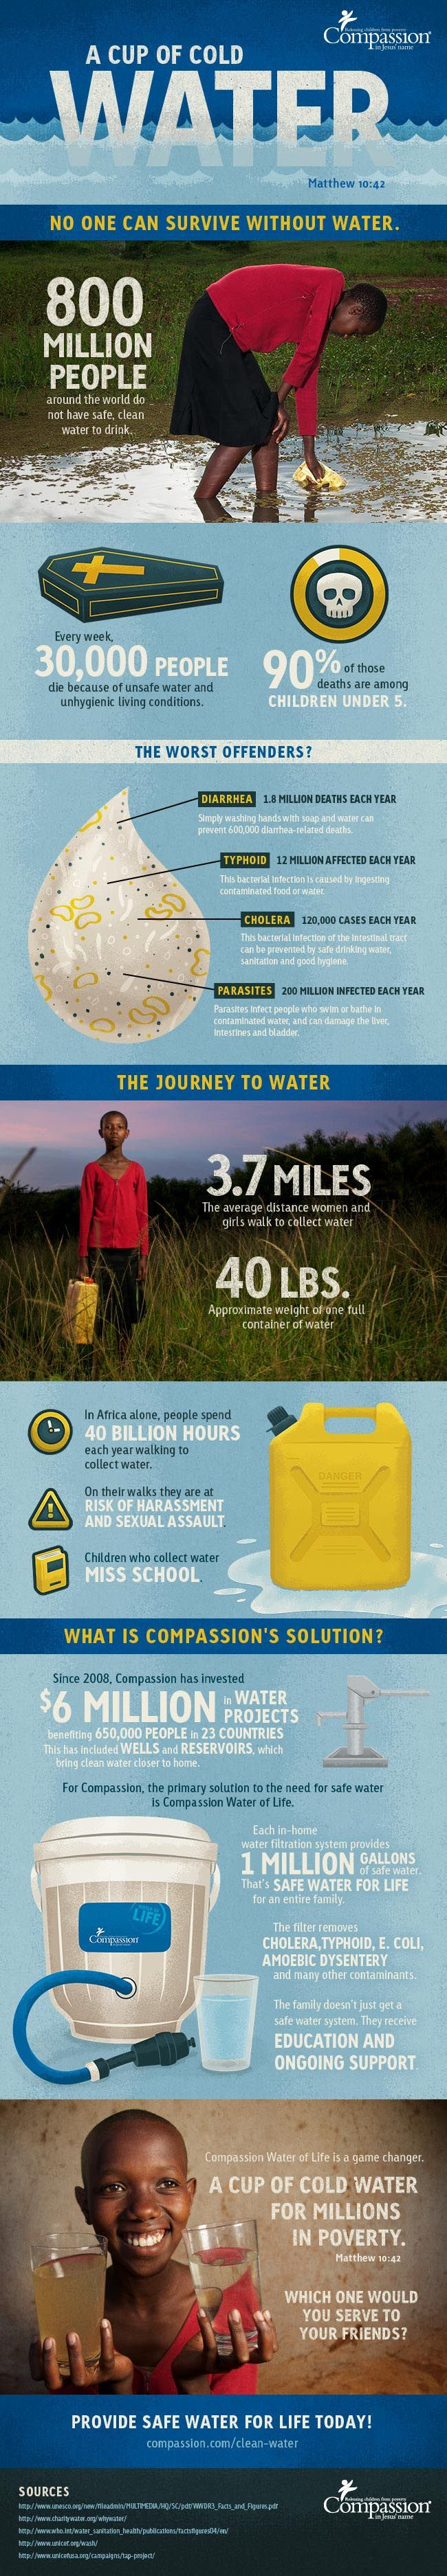 A Cup of Cold Water: No One Can Survive Without Water